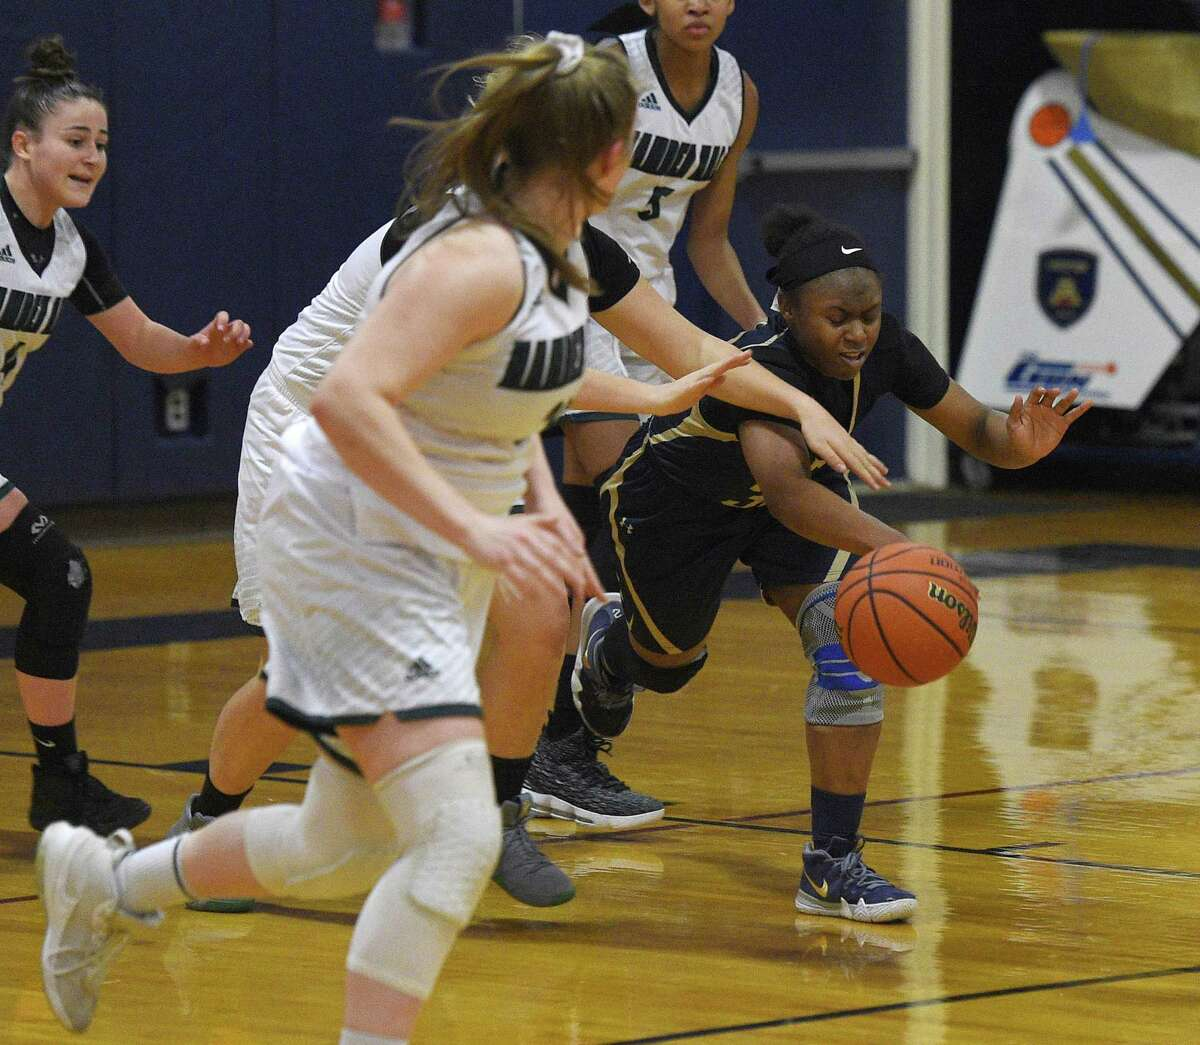 King's Alonna Christy controls the ball in the high school girls basketball game between King School and Hamden Hall at King School in Stamford on Tuesday.